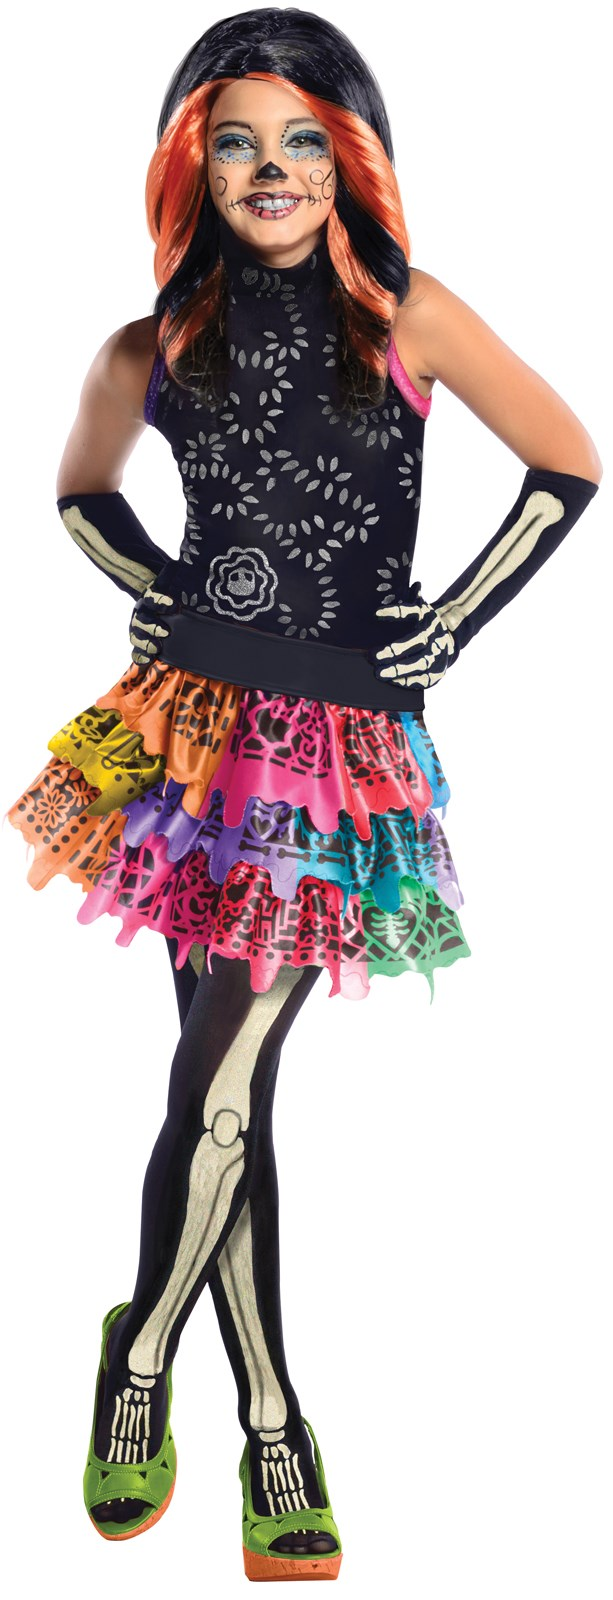 Monster High Skelita Calaveras Child Costume Large (12/14)